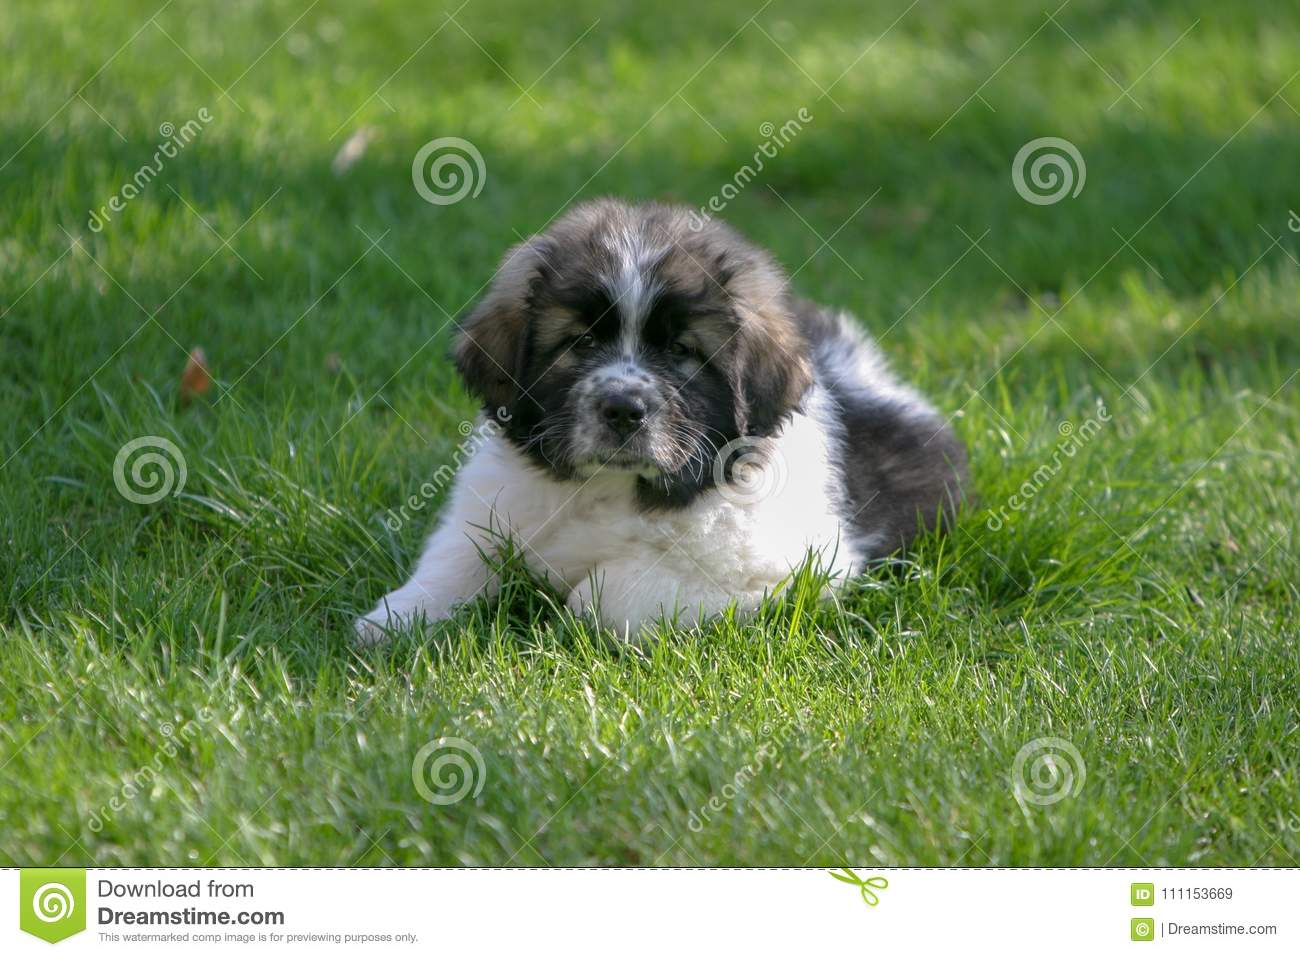 Young Great Pyrenees / Newfoundland puppy enjoying a spring day